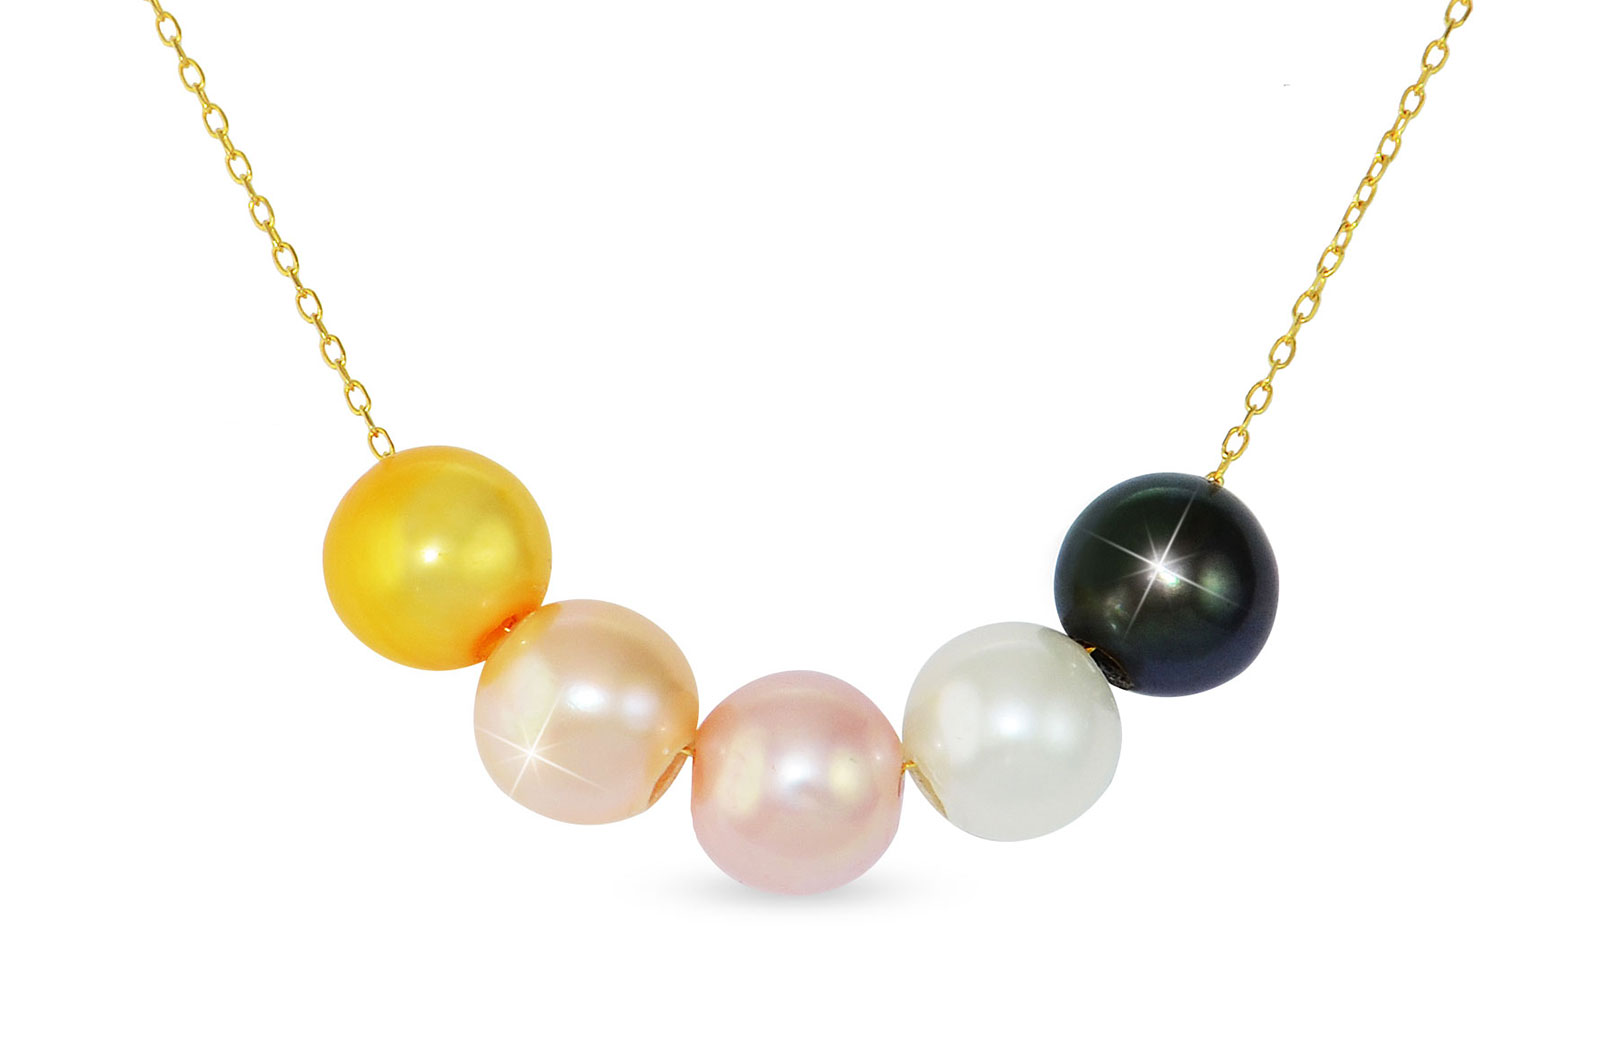 Vera Perla 18k Gold Interchangeable Pearls Necklace